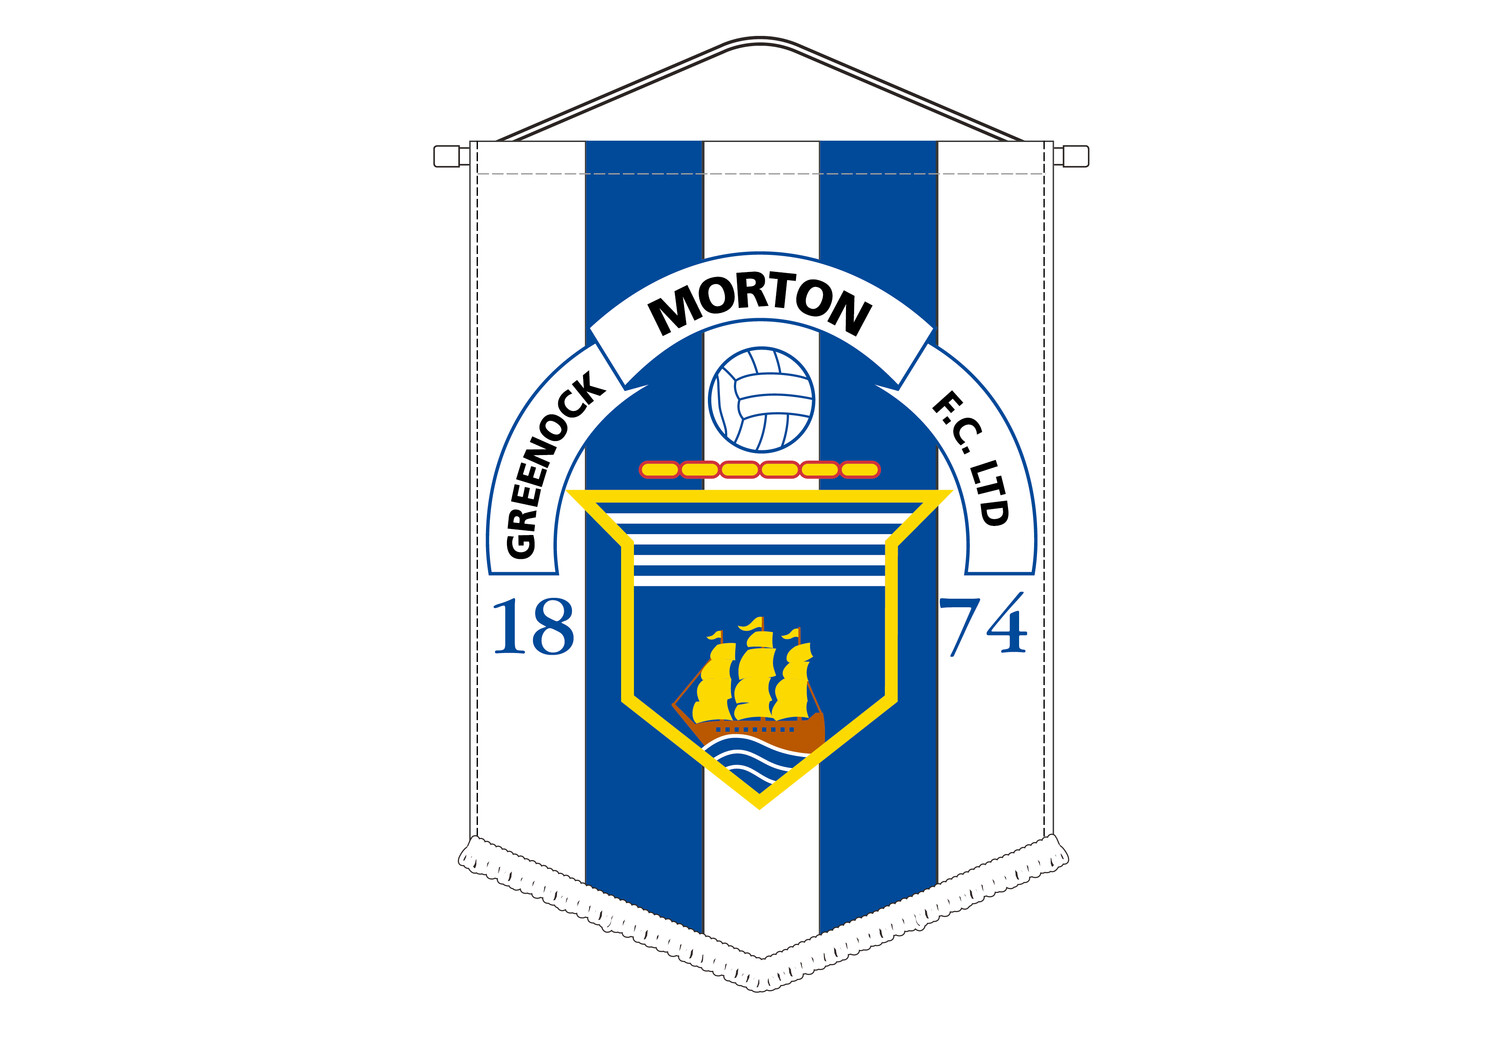 Morton Pennant (New product - On sale soon)